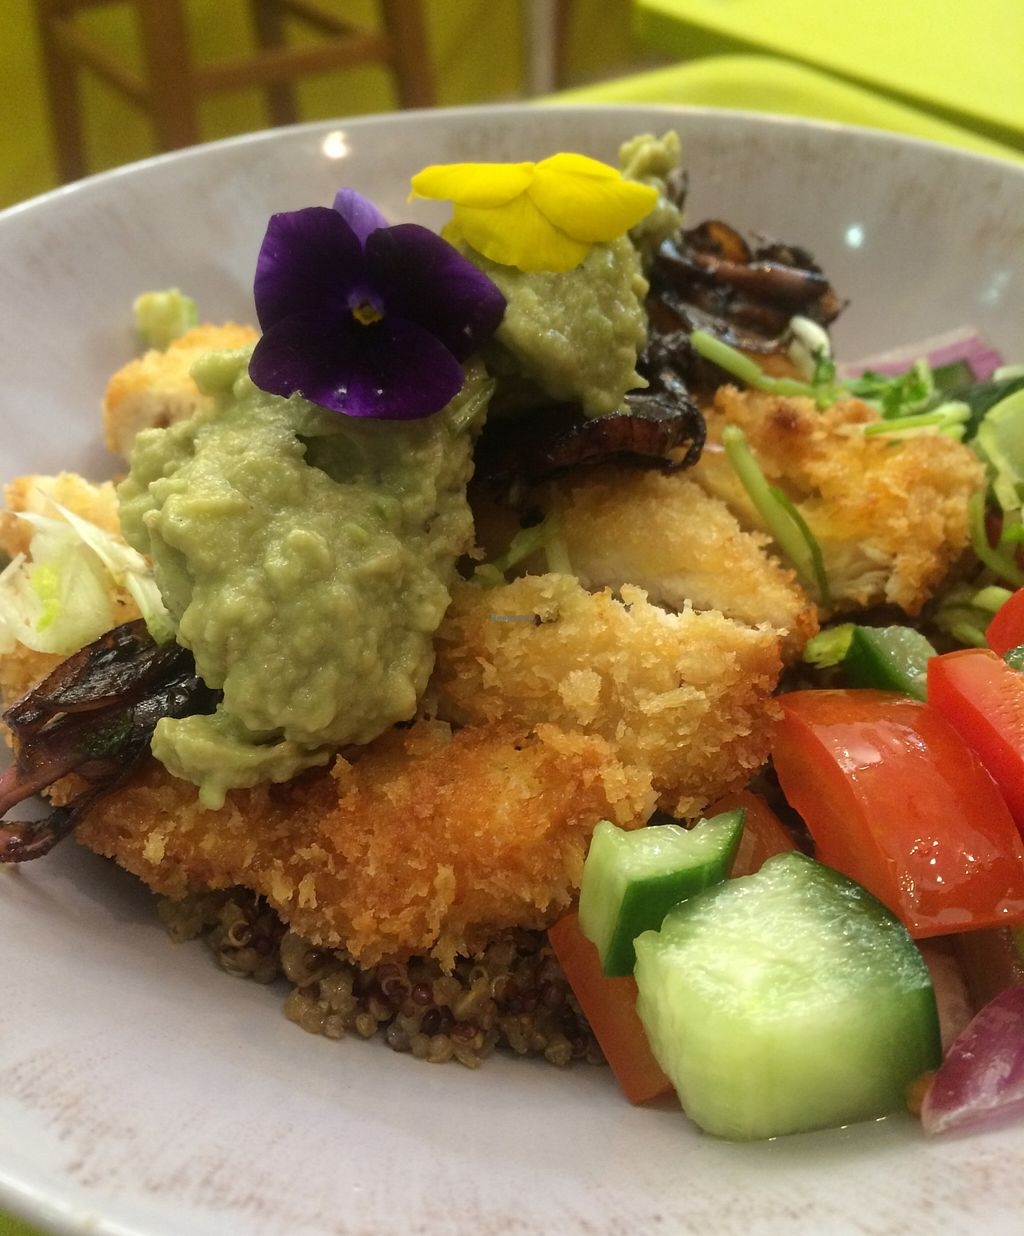 """Photo of CLOSED: Sattbar - 사뜨바  by <a href=""""/members/profile/michellekim"""">michellekim</a> <br/>my ultimate favorite sattbowl- chef style. The chicken is an addition and can be taken out and replaced with falafel balls or whatever the chef is in the mood for.  <br/> January 31, 2016  - <a href='/contact/abuse/image/66958/134327'>Report</a>"""